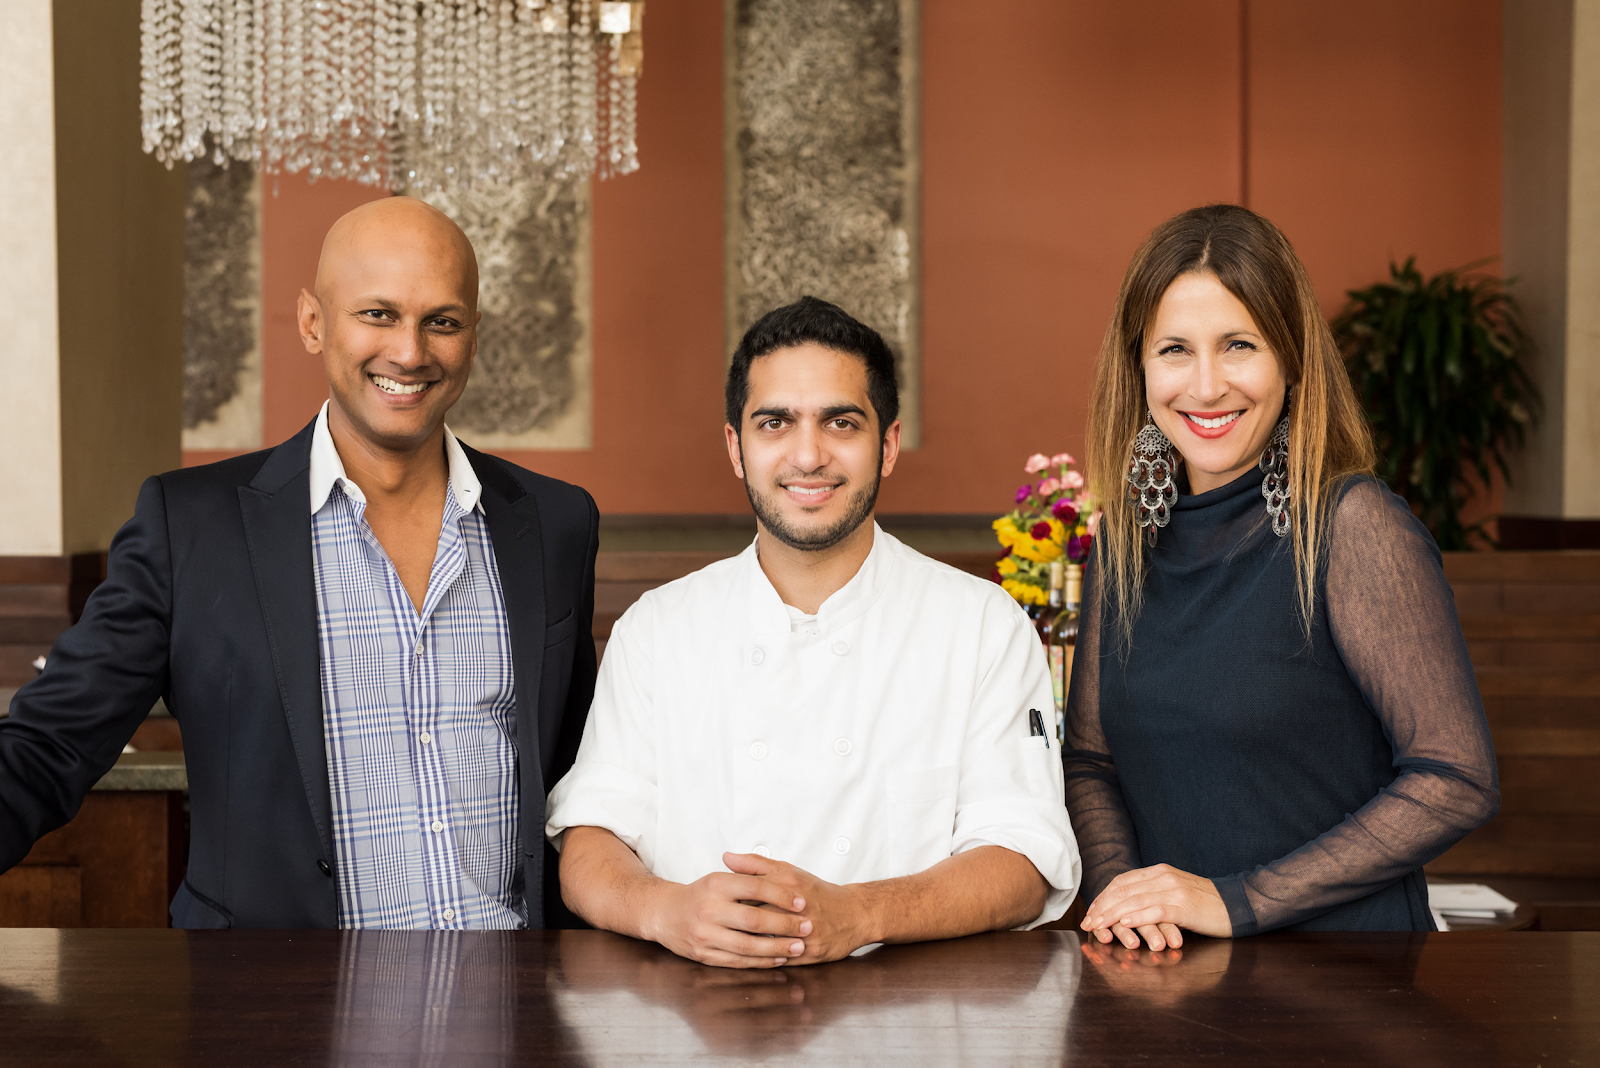 Anjan Mitra, Arun Gupta and Emily Mitra in their Oakland, CA restaurant, Dosa by Dosa